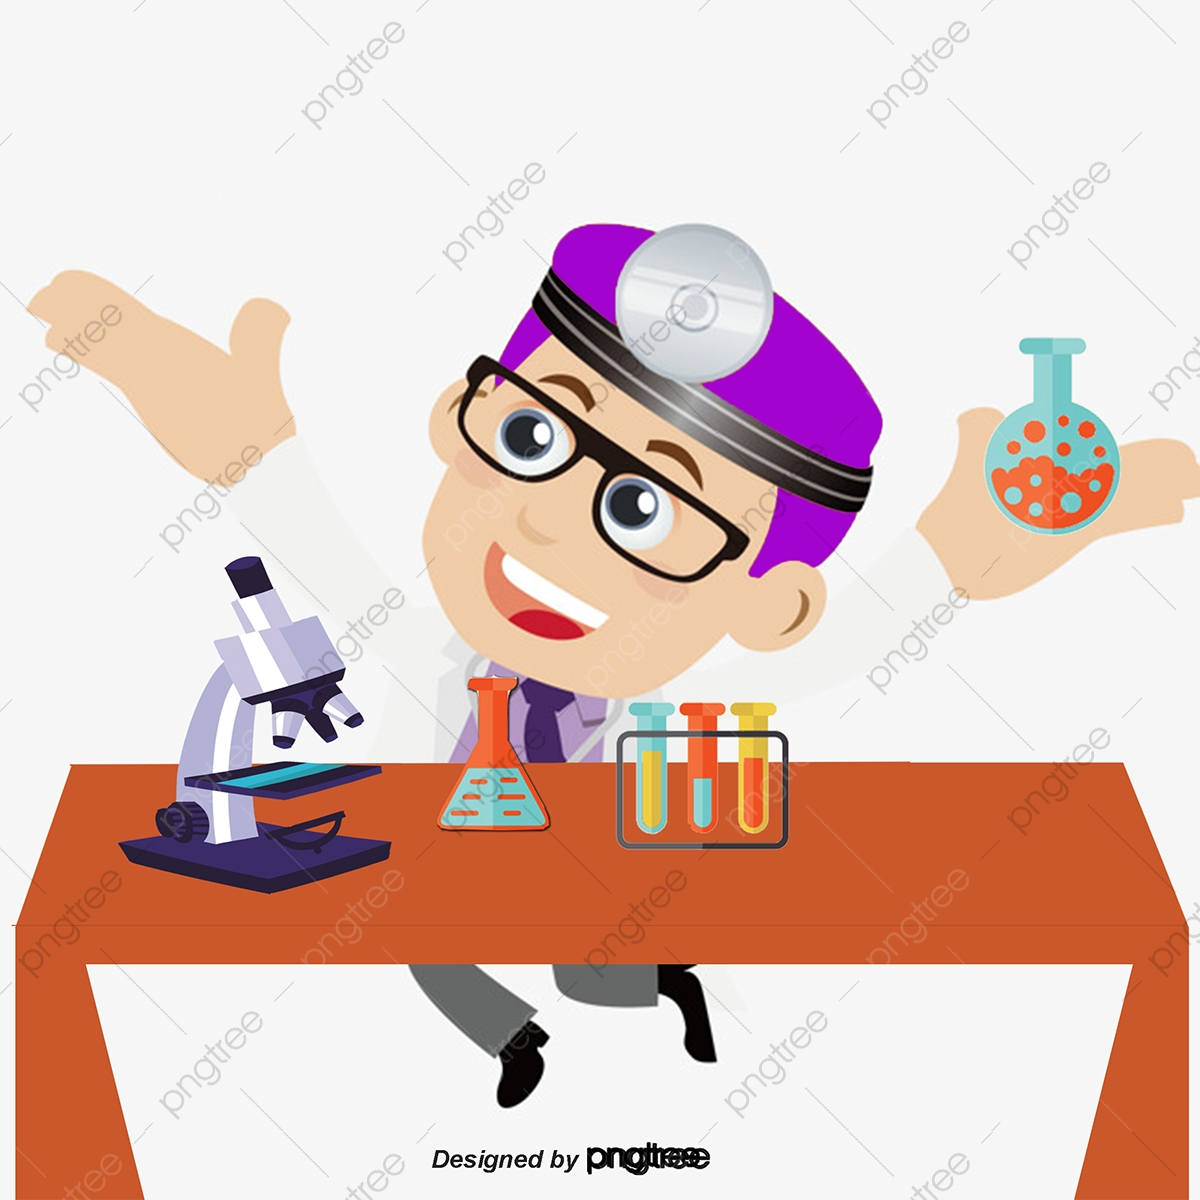 scientist vector png vector psd and clipart with transparent background for free download pngtree https pngtree com freepng scientific experiment scientist 2931570 html